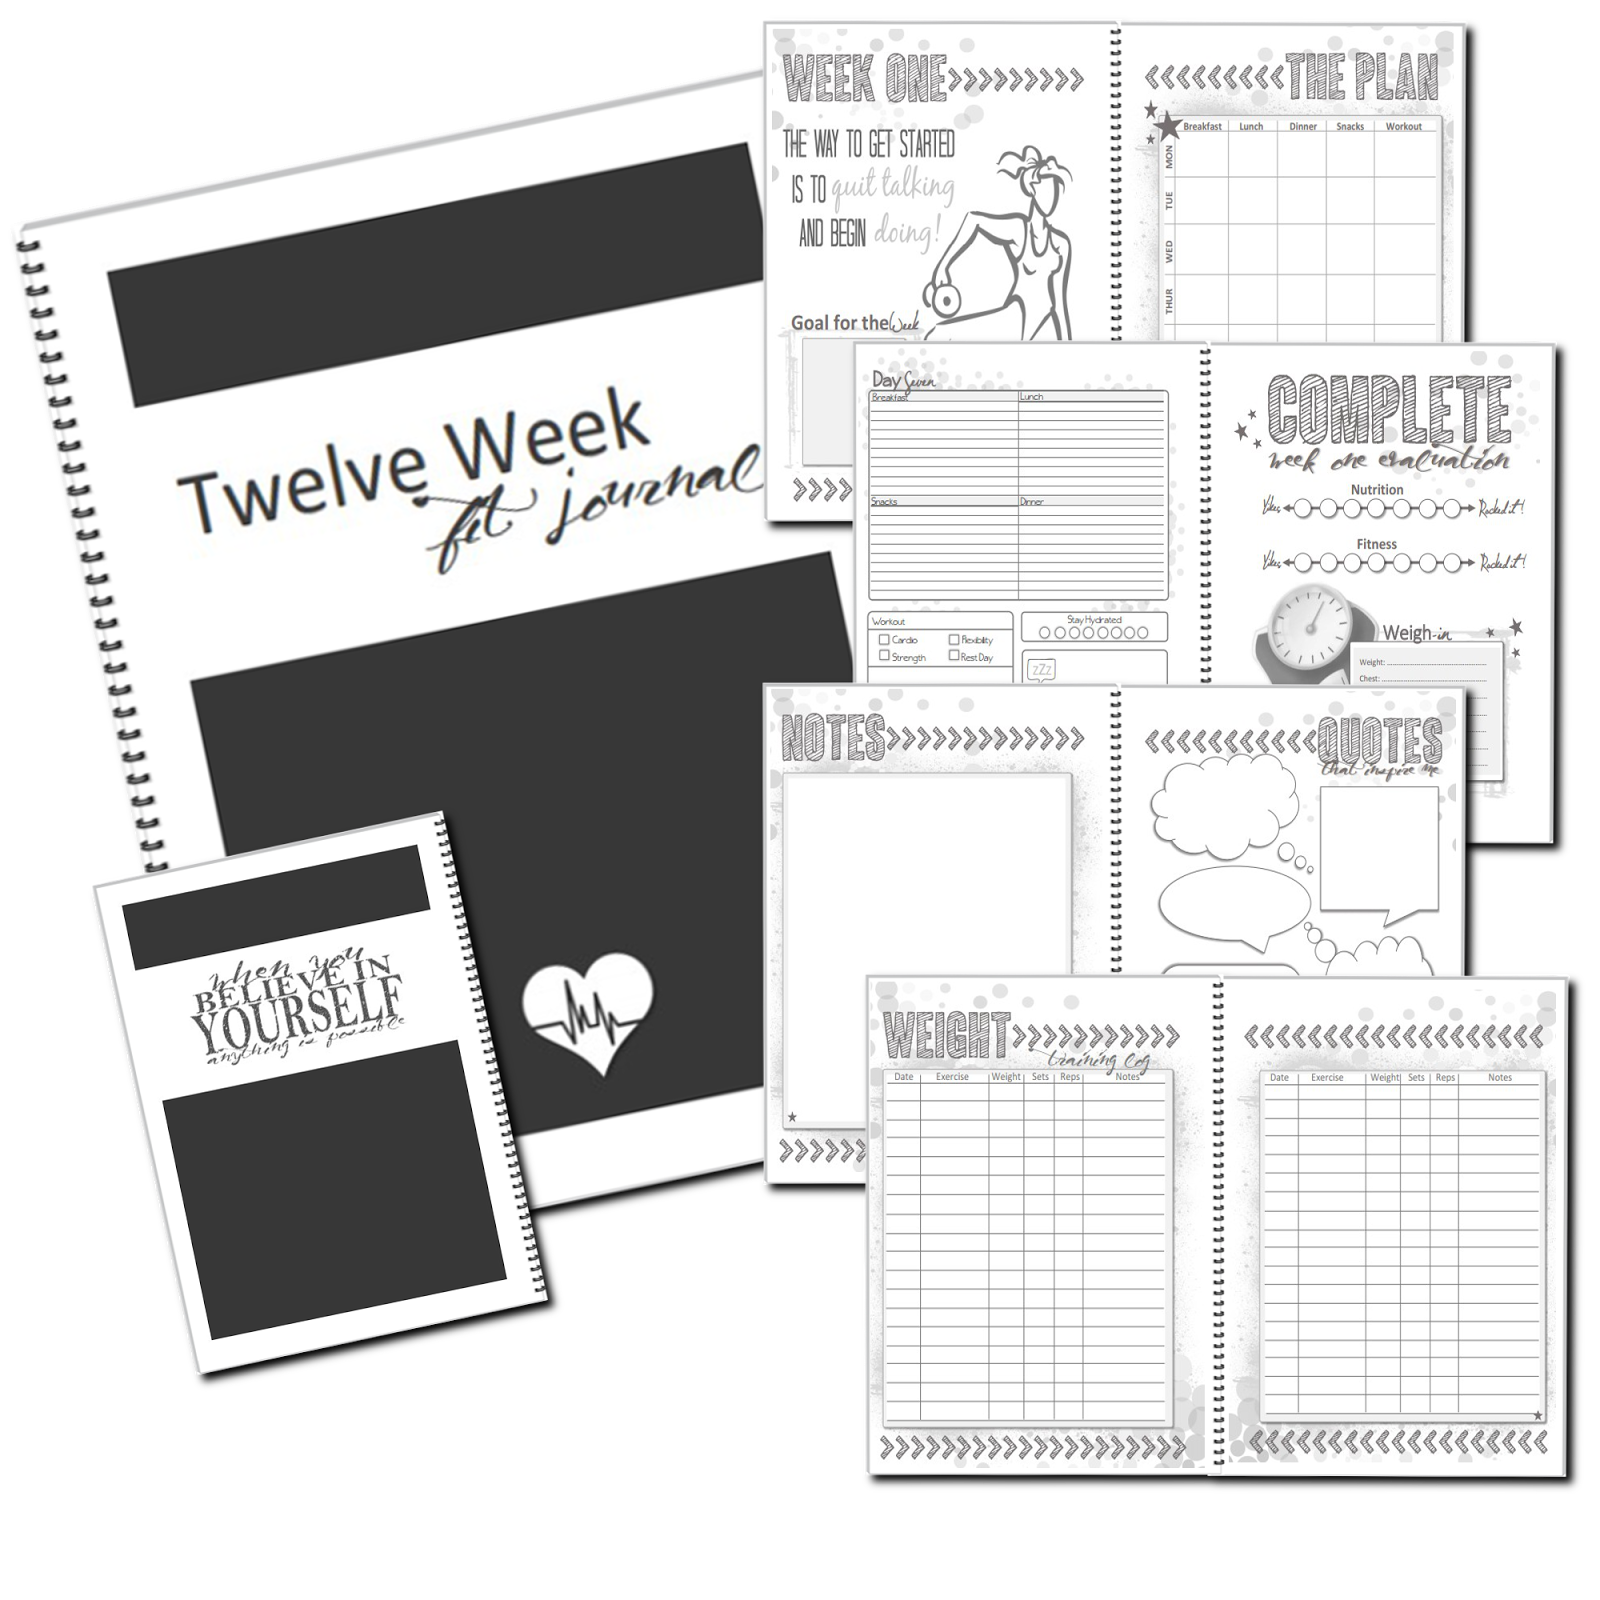 Success Journal 12 Week Weight Loss Workbook To